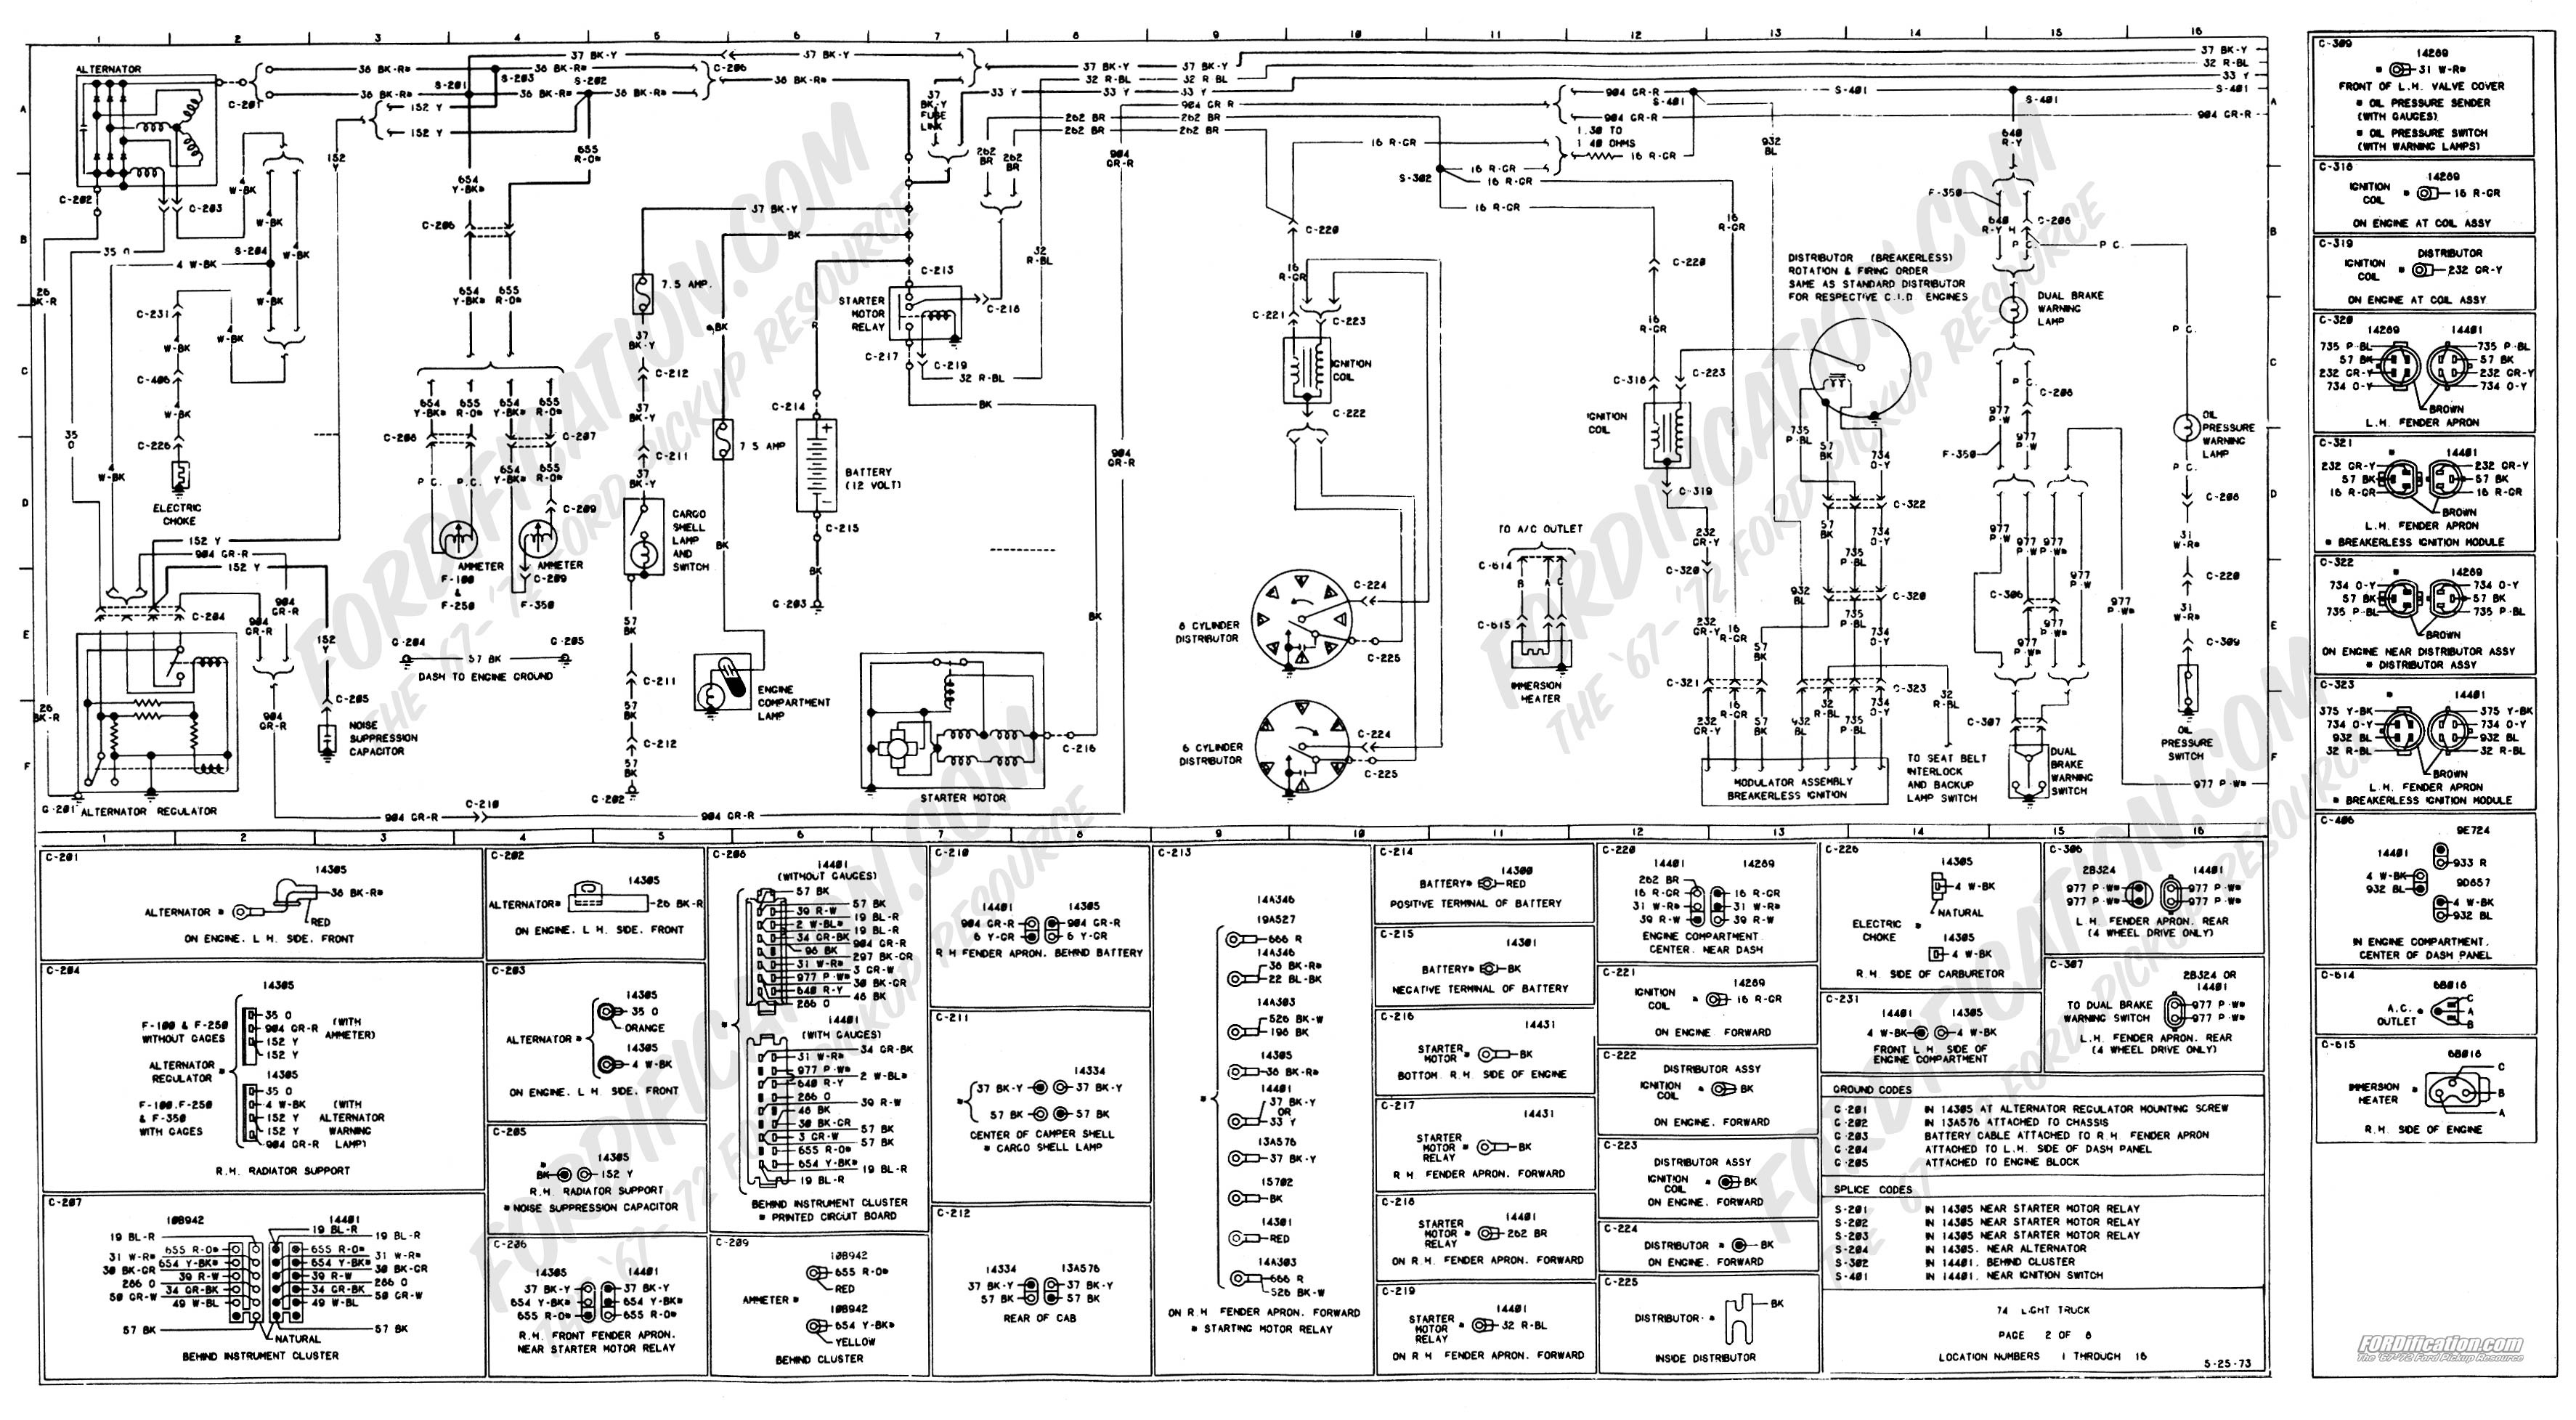 1977 ford f150 wiring diagram new wiring diagram image rh mainetreasurechest com 1974 Ford Truck Wiring Diagram 1978 Ford Truck Wiring Diagram